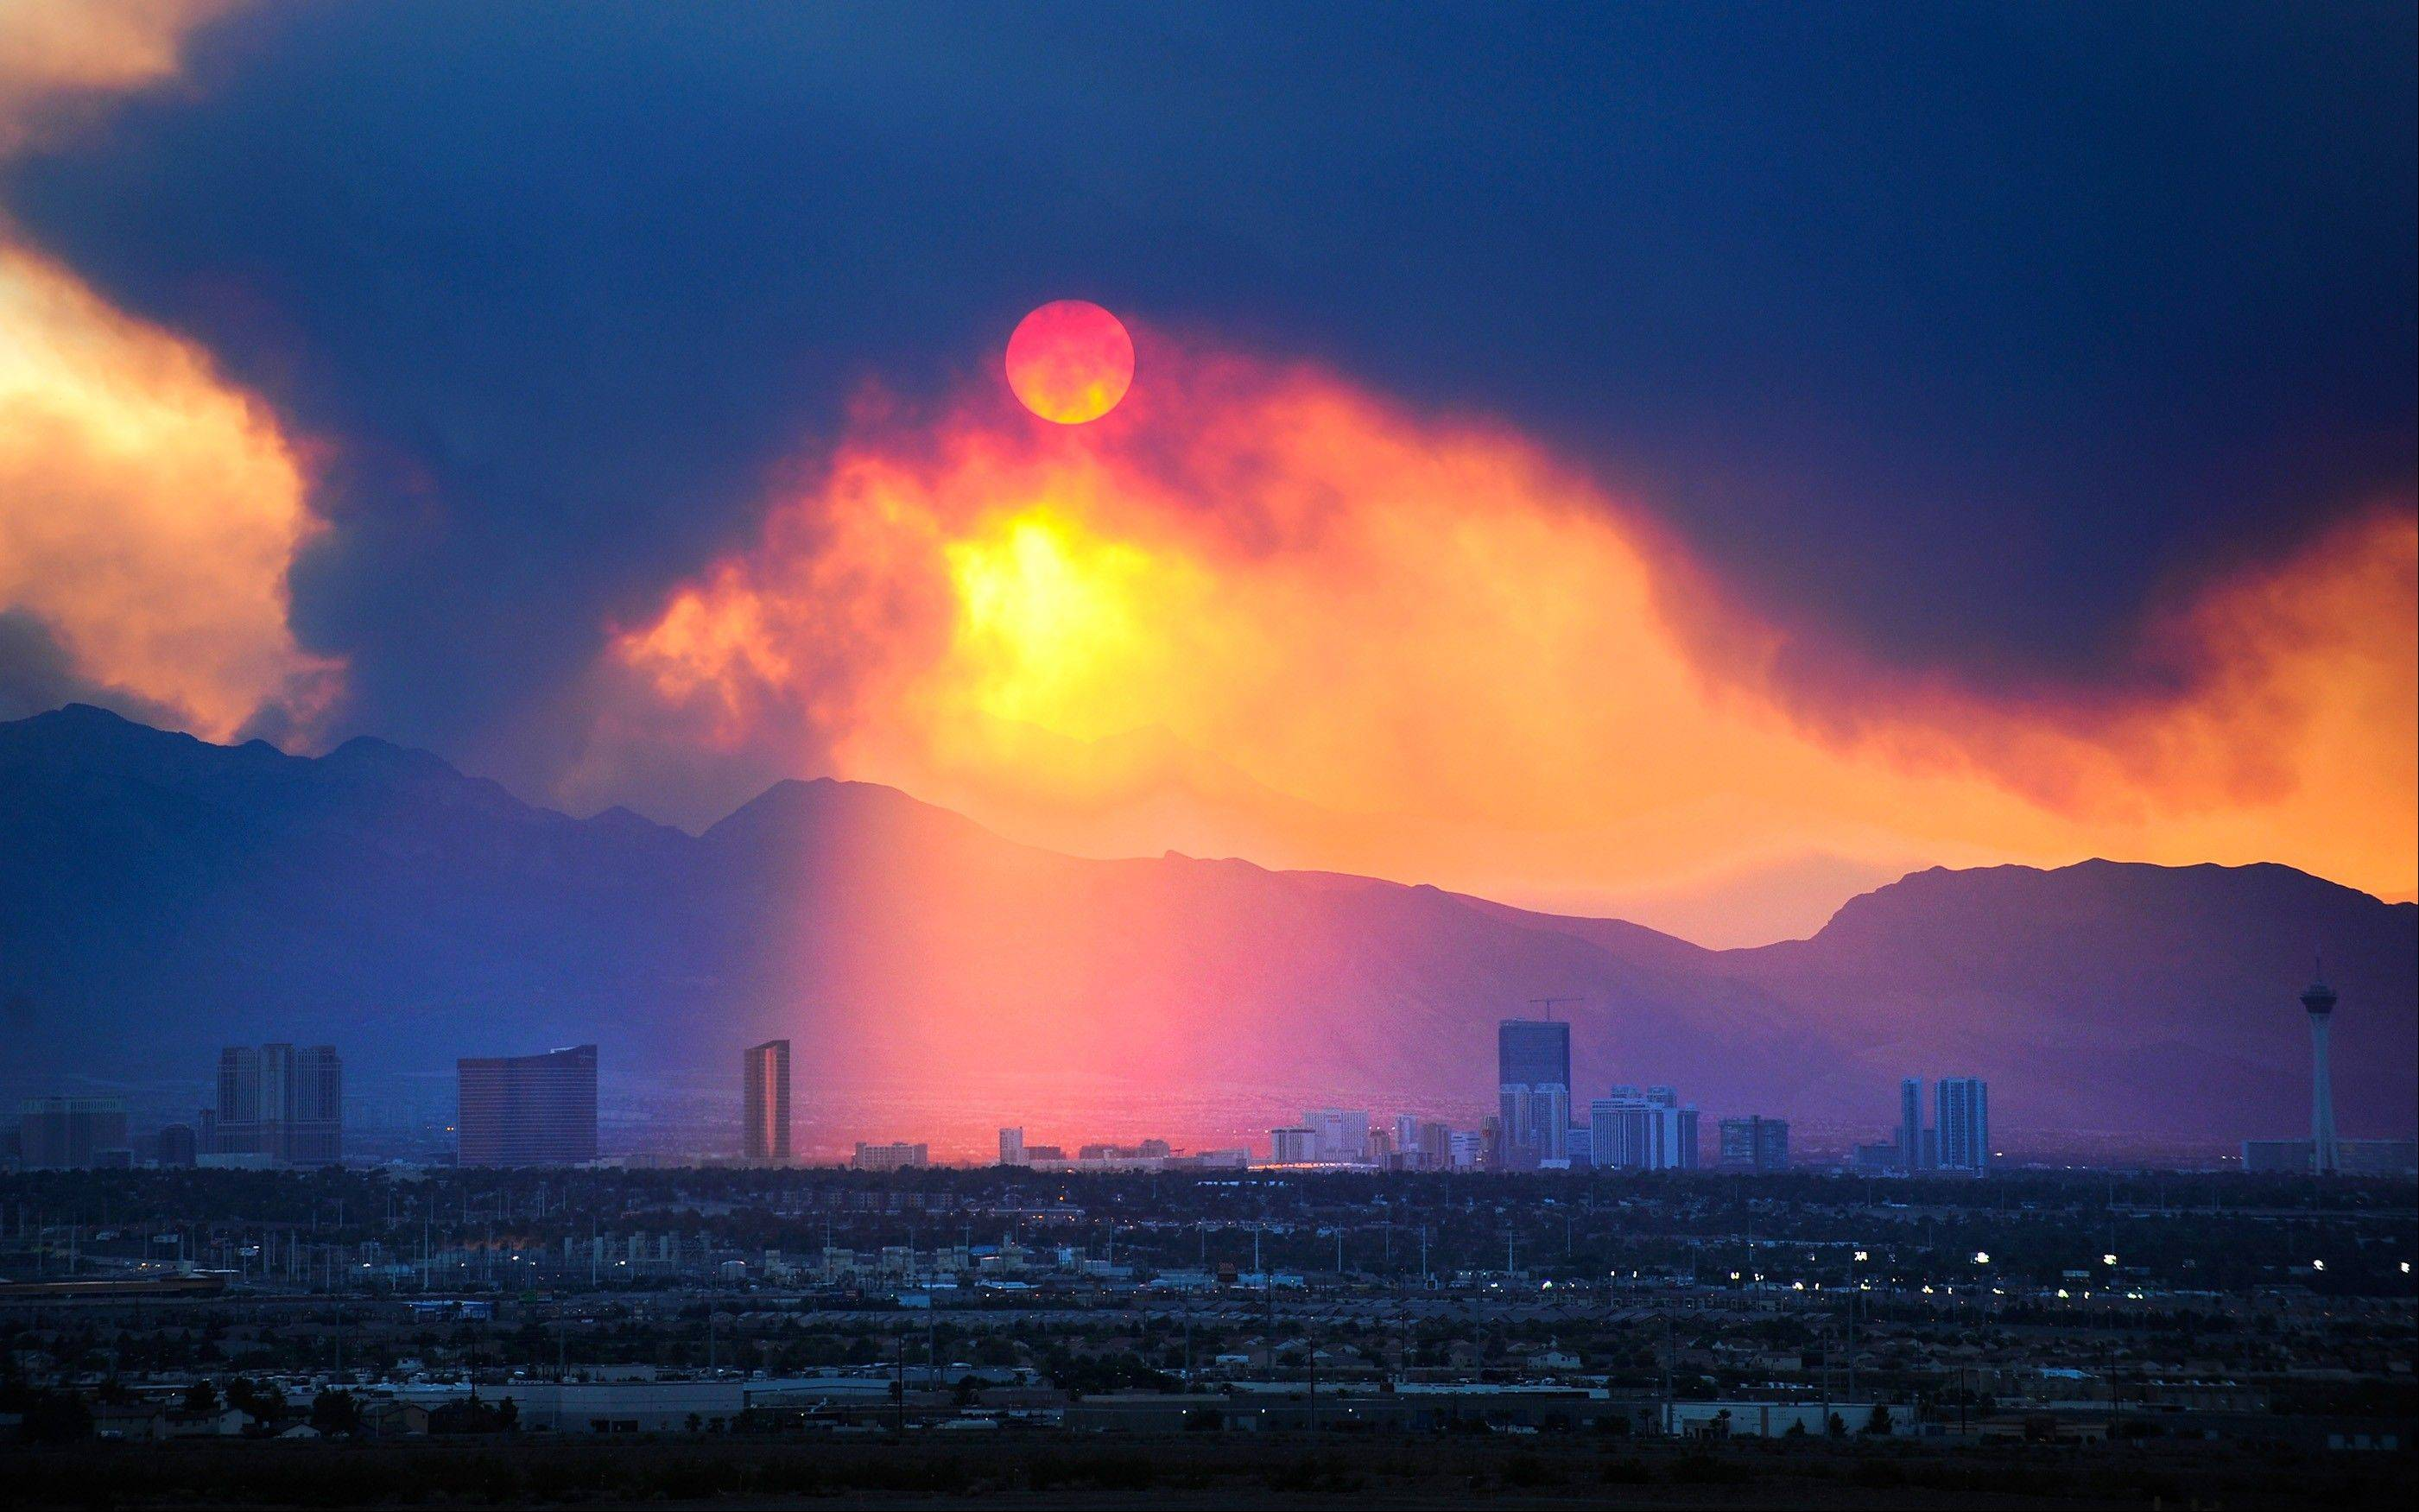 The Las Vegas Strip skyline is seen as smoke continues to billow from the Carpenter 1 fire on Mount Charleston on Monday, July 8, 2013 in Las Vegas. Homes were threatened, but more than 750 firefighters, including 18 elite Hotshot crews, were battling the Carpenter 1 Fire some 25 miles northwest of Las Vegas, said Jay Nichols, a U.S. Forest Service spokesman in the Spring Mountains National Recreation Area.